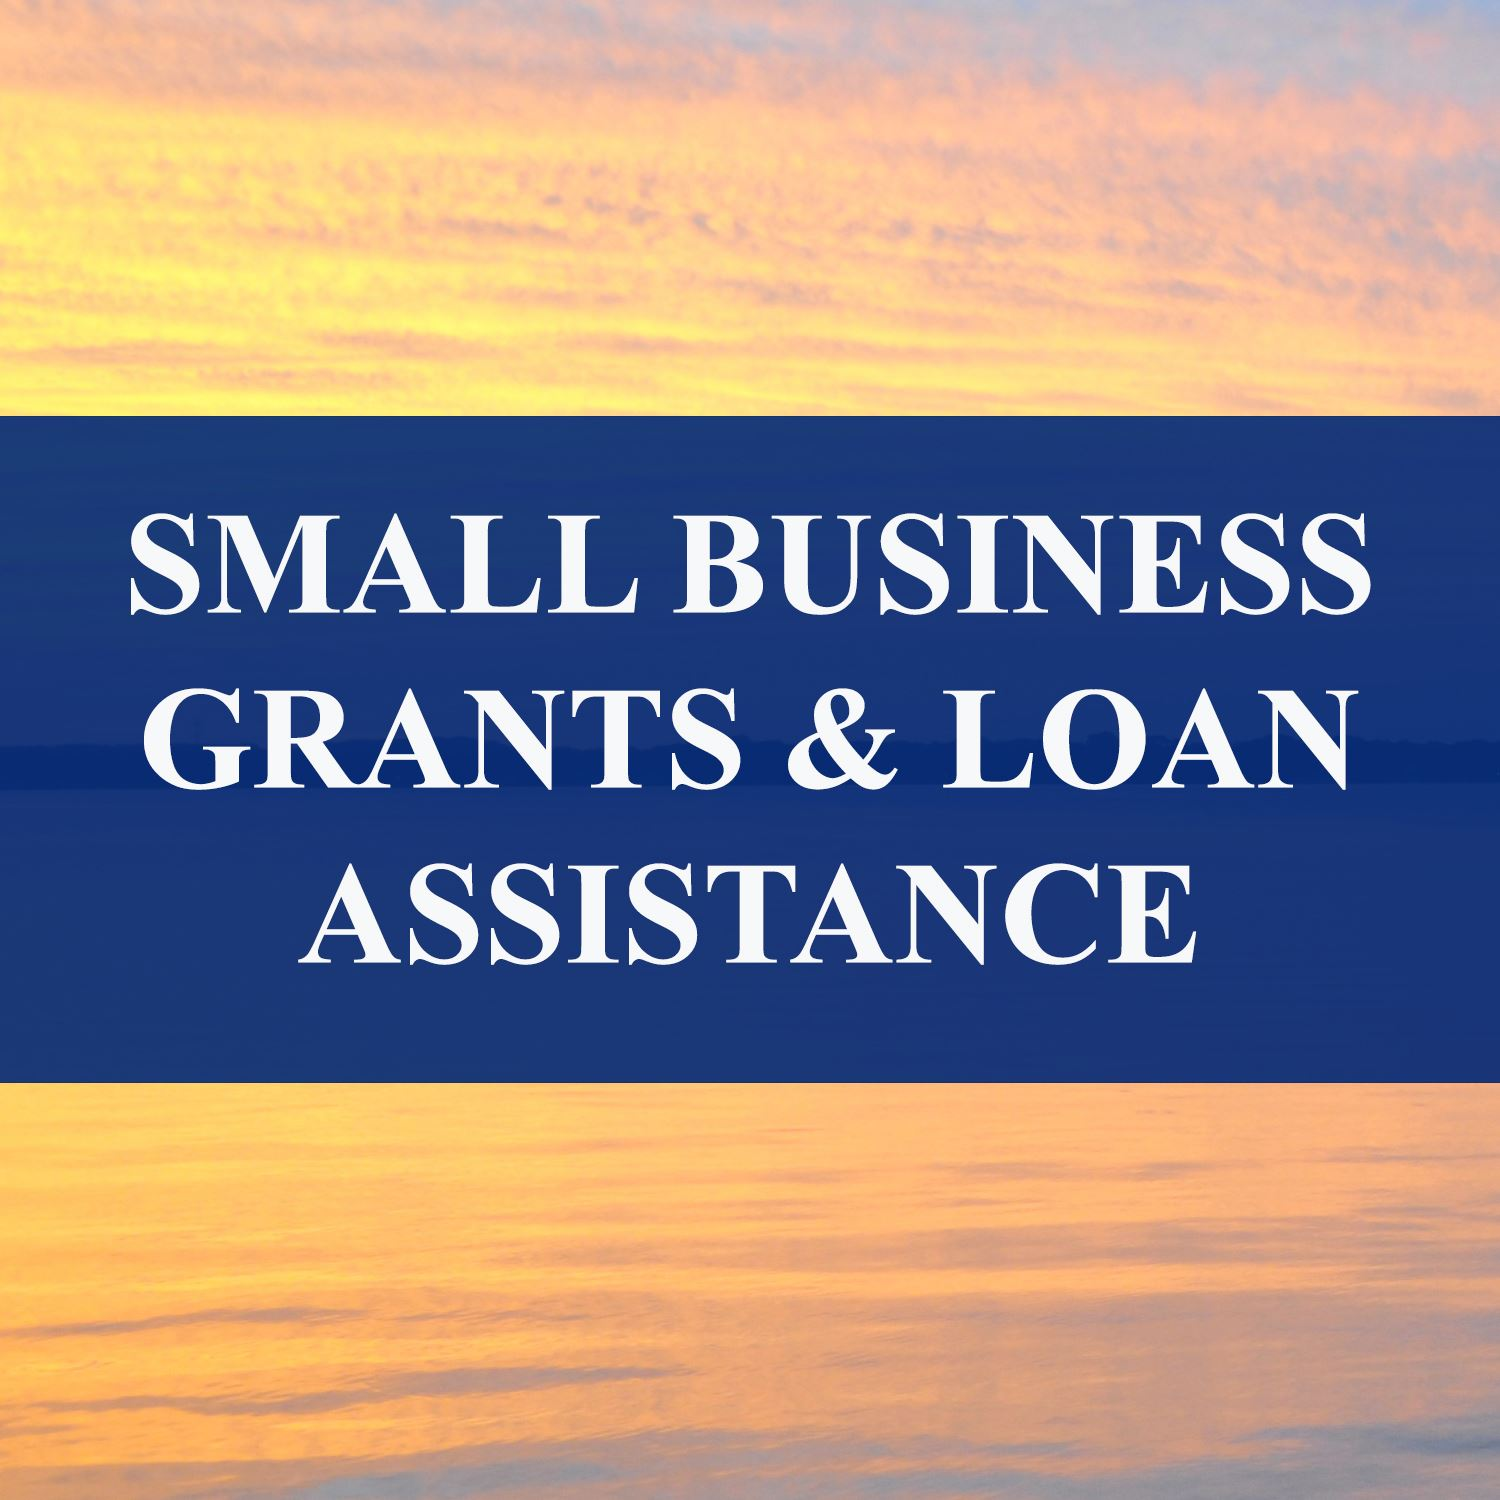 Small Business Grants and Loan Assistance